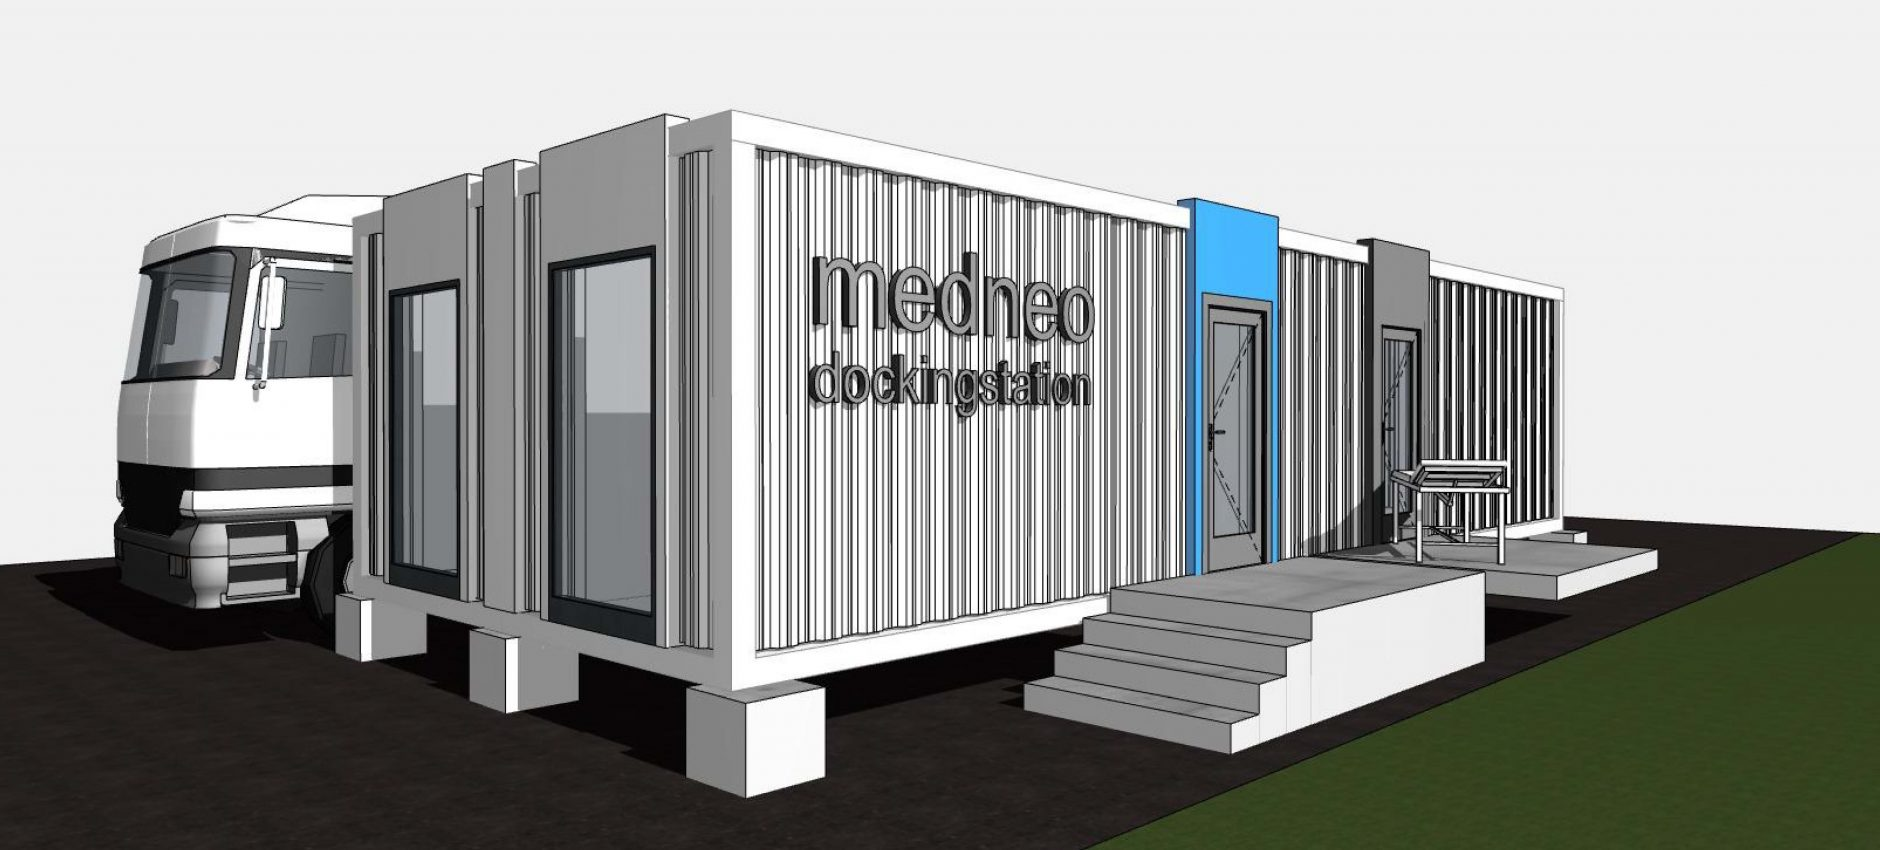 medneo_Dockingstation_.jpg